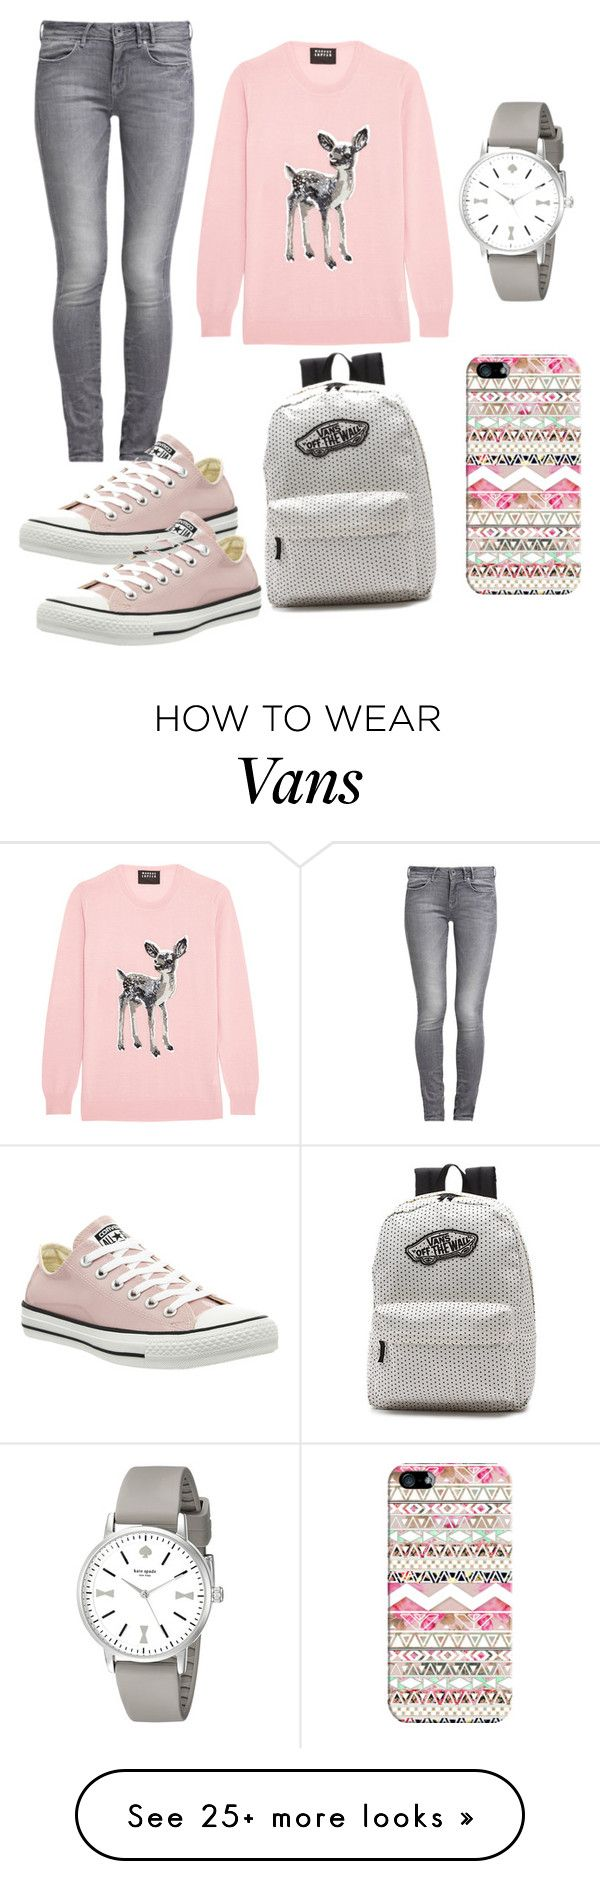 """""""Untitled #34"""" by catmother on Polyvore featuring moda, Markus Lupfer, GUESS, Converse, Kate Spade, Vans y Casetify"""